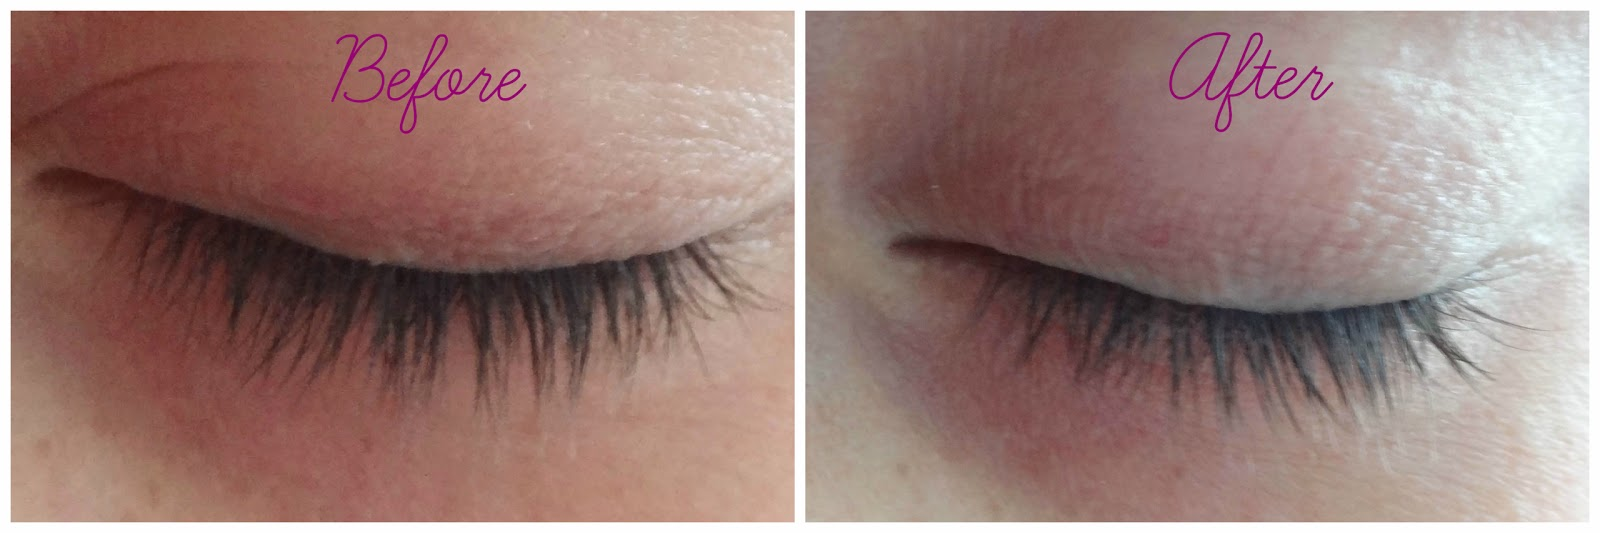 Before and After FEG Eyelash Enhancer